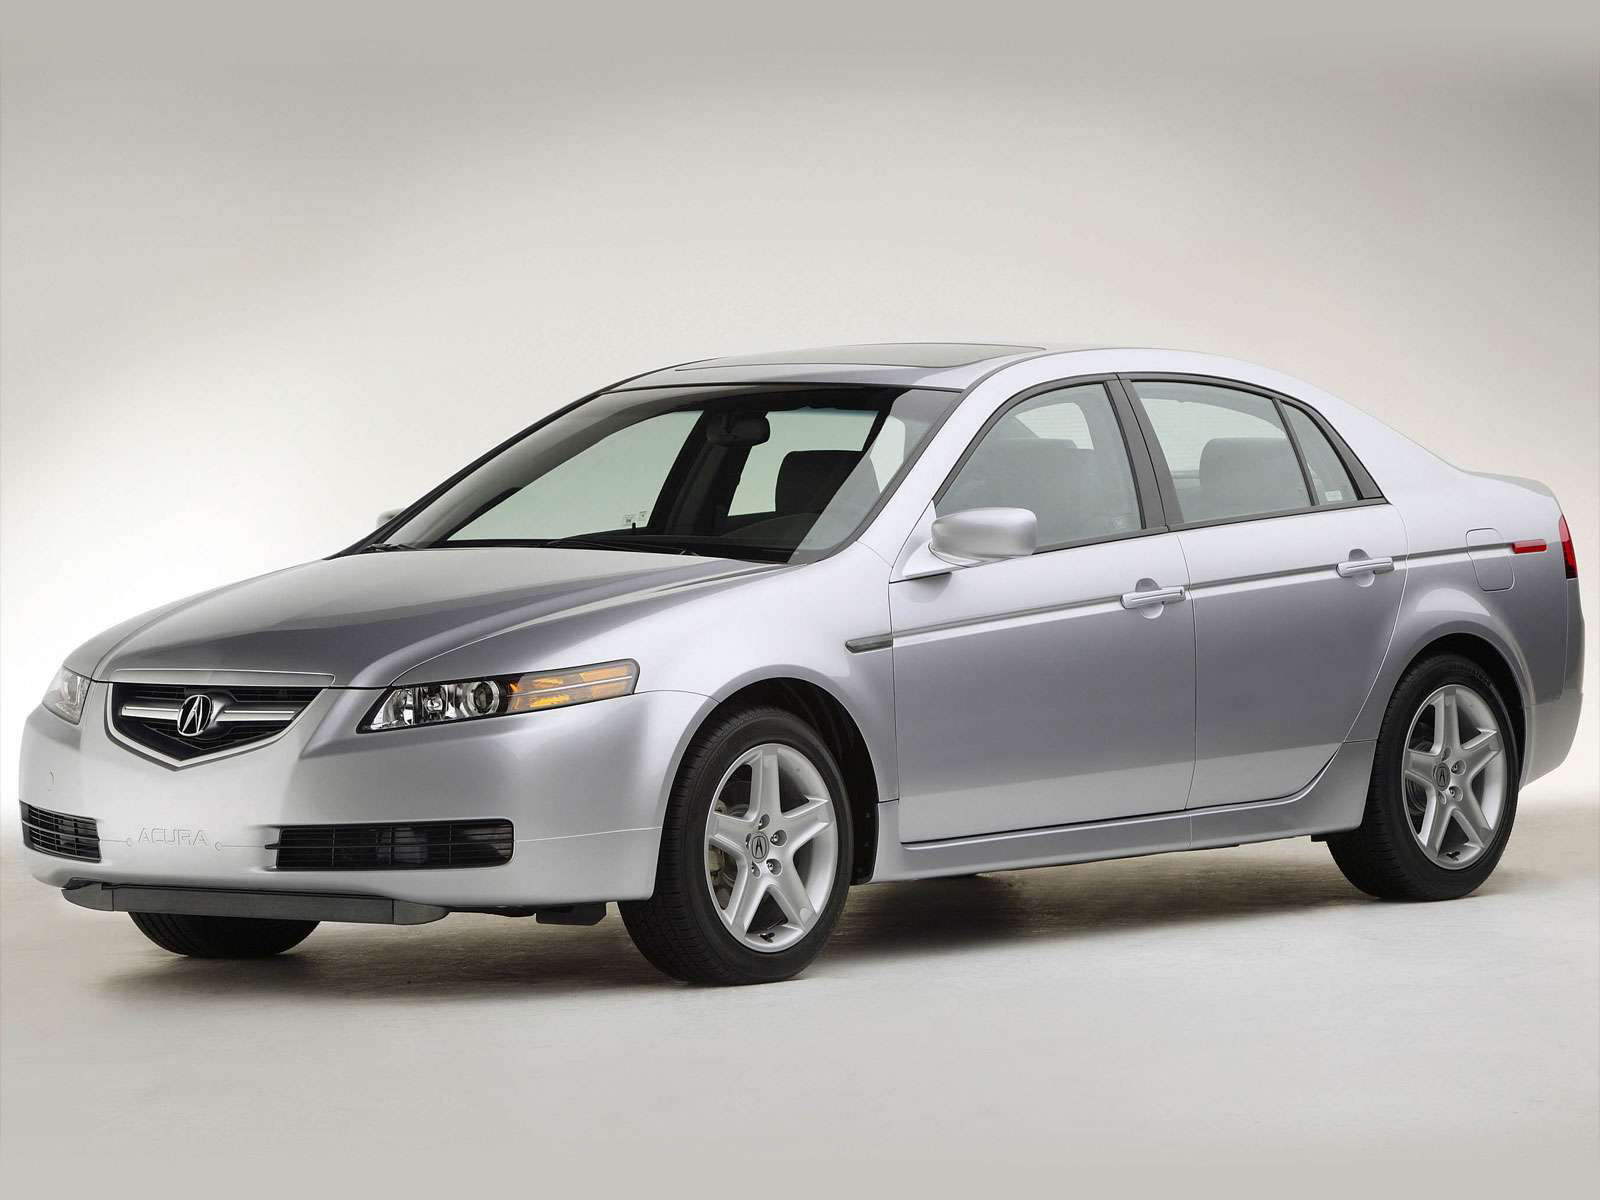 Japanese car photos | 2005 Acura TL Car Insurance ...